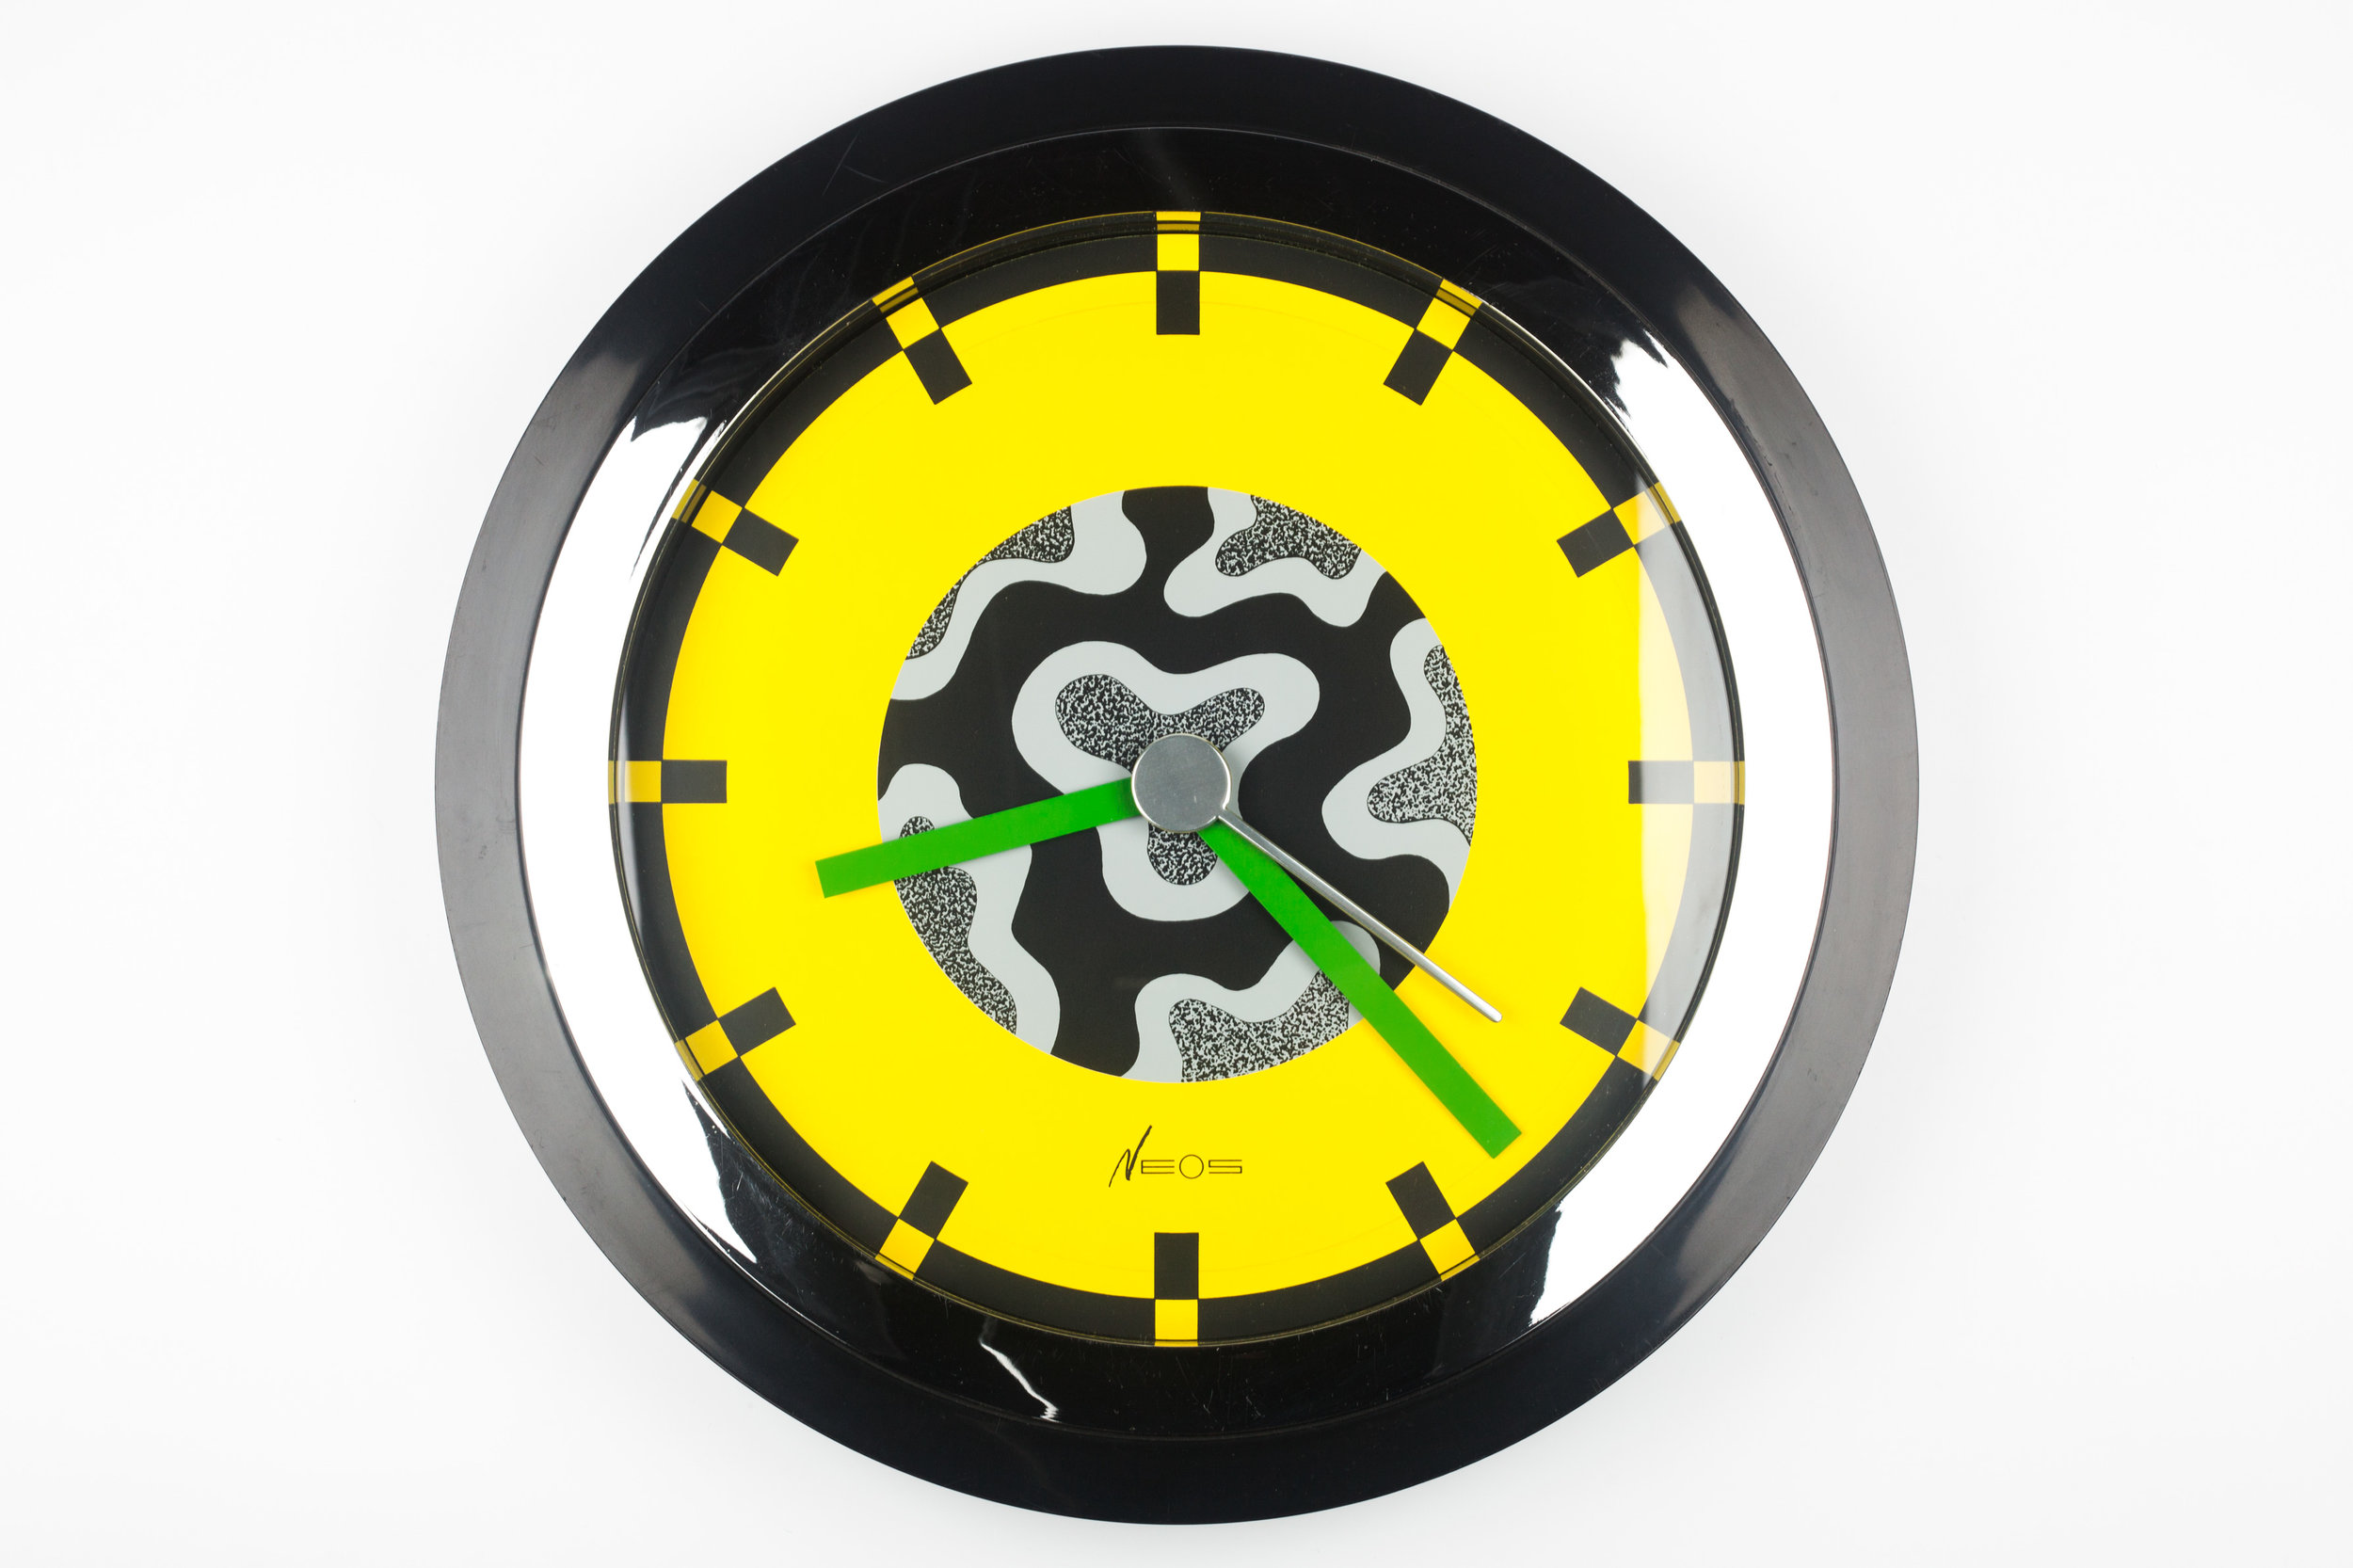 MEMPHIS WALL CLOCK CHROME, YELLOW BY DU PASQUIER AND SOWDEN X NEOS, ITALY, 1980S